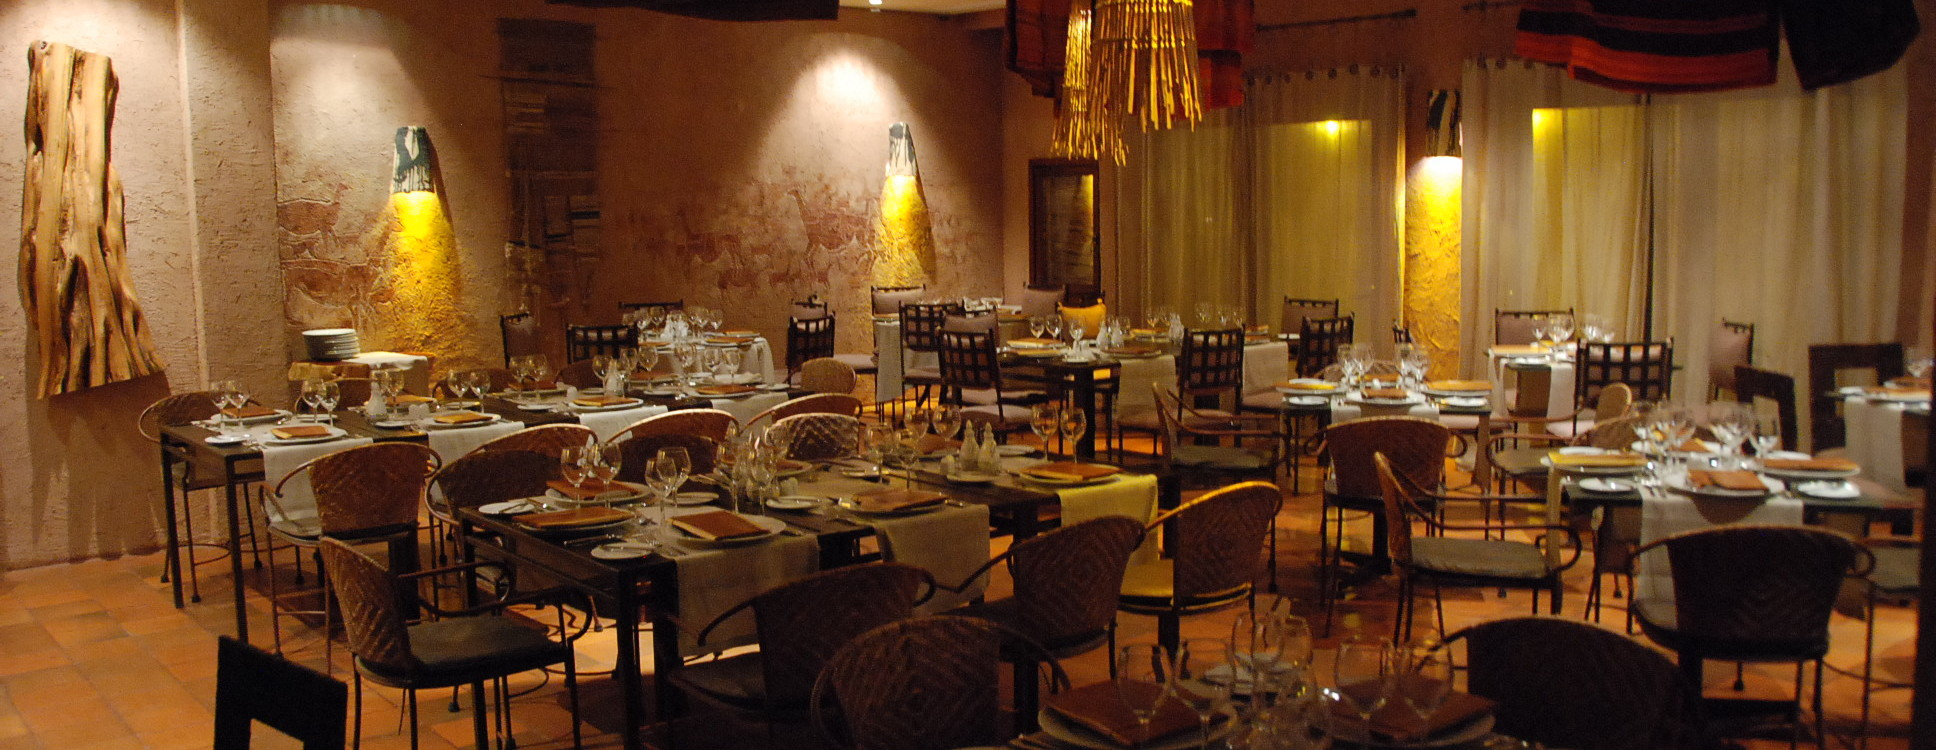 alto-atacama-lodge-restaurant